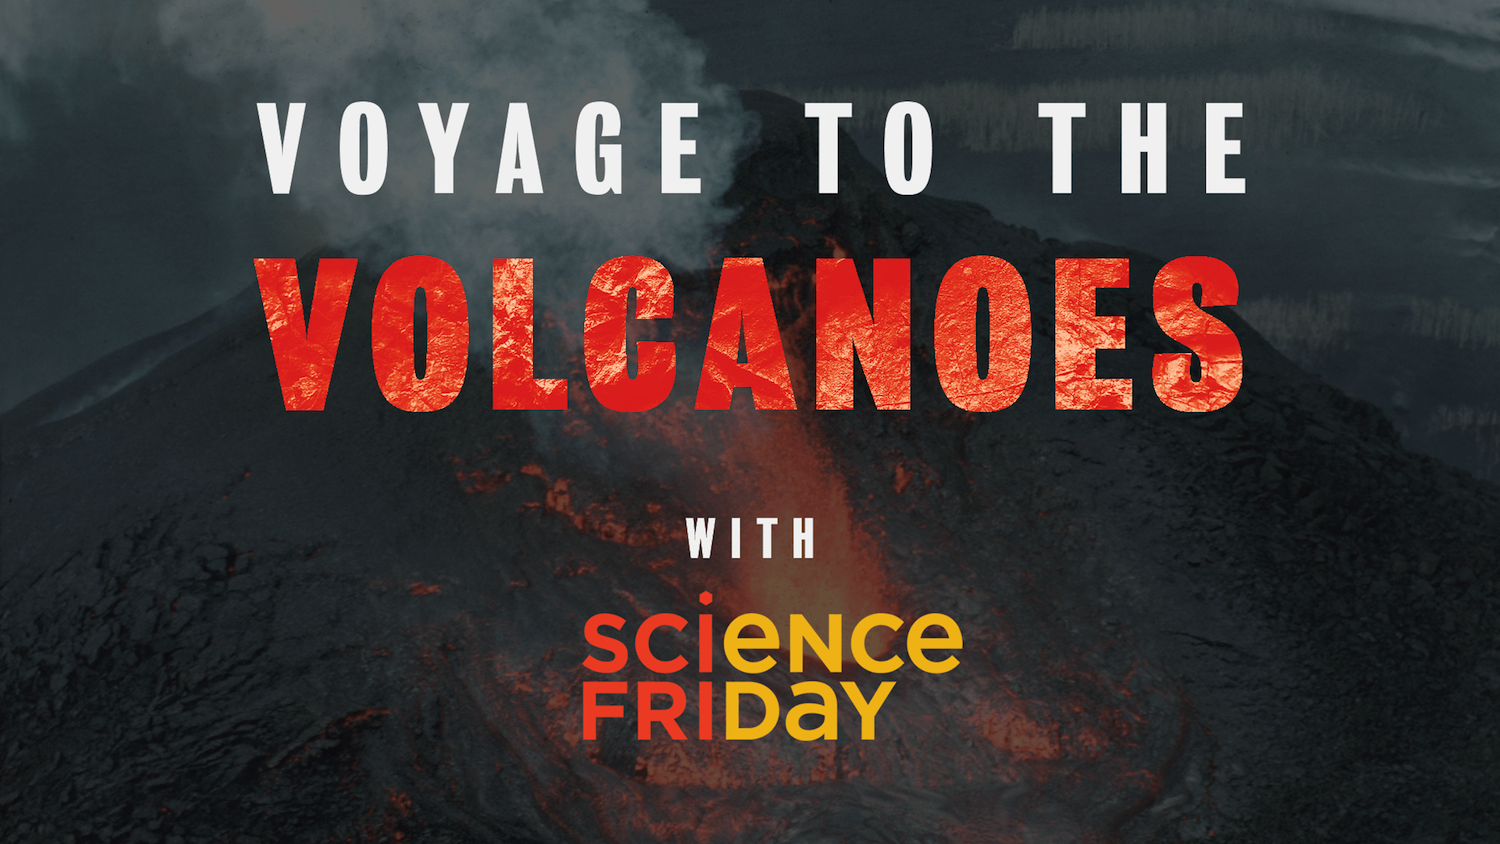 """a poster for a science friday event in new york titled """"voyage to the volcanoes with science friday"""" in the foreground. in the background there is an erupting volcano"""